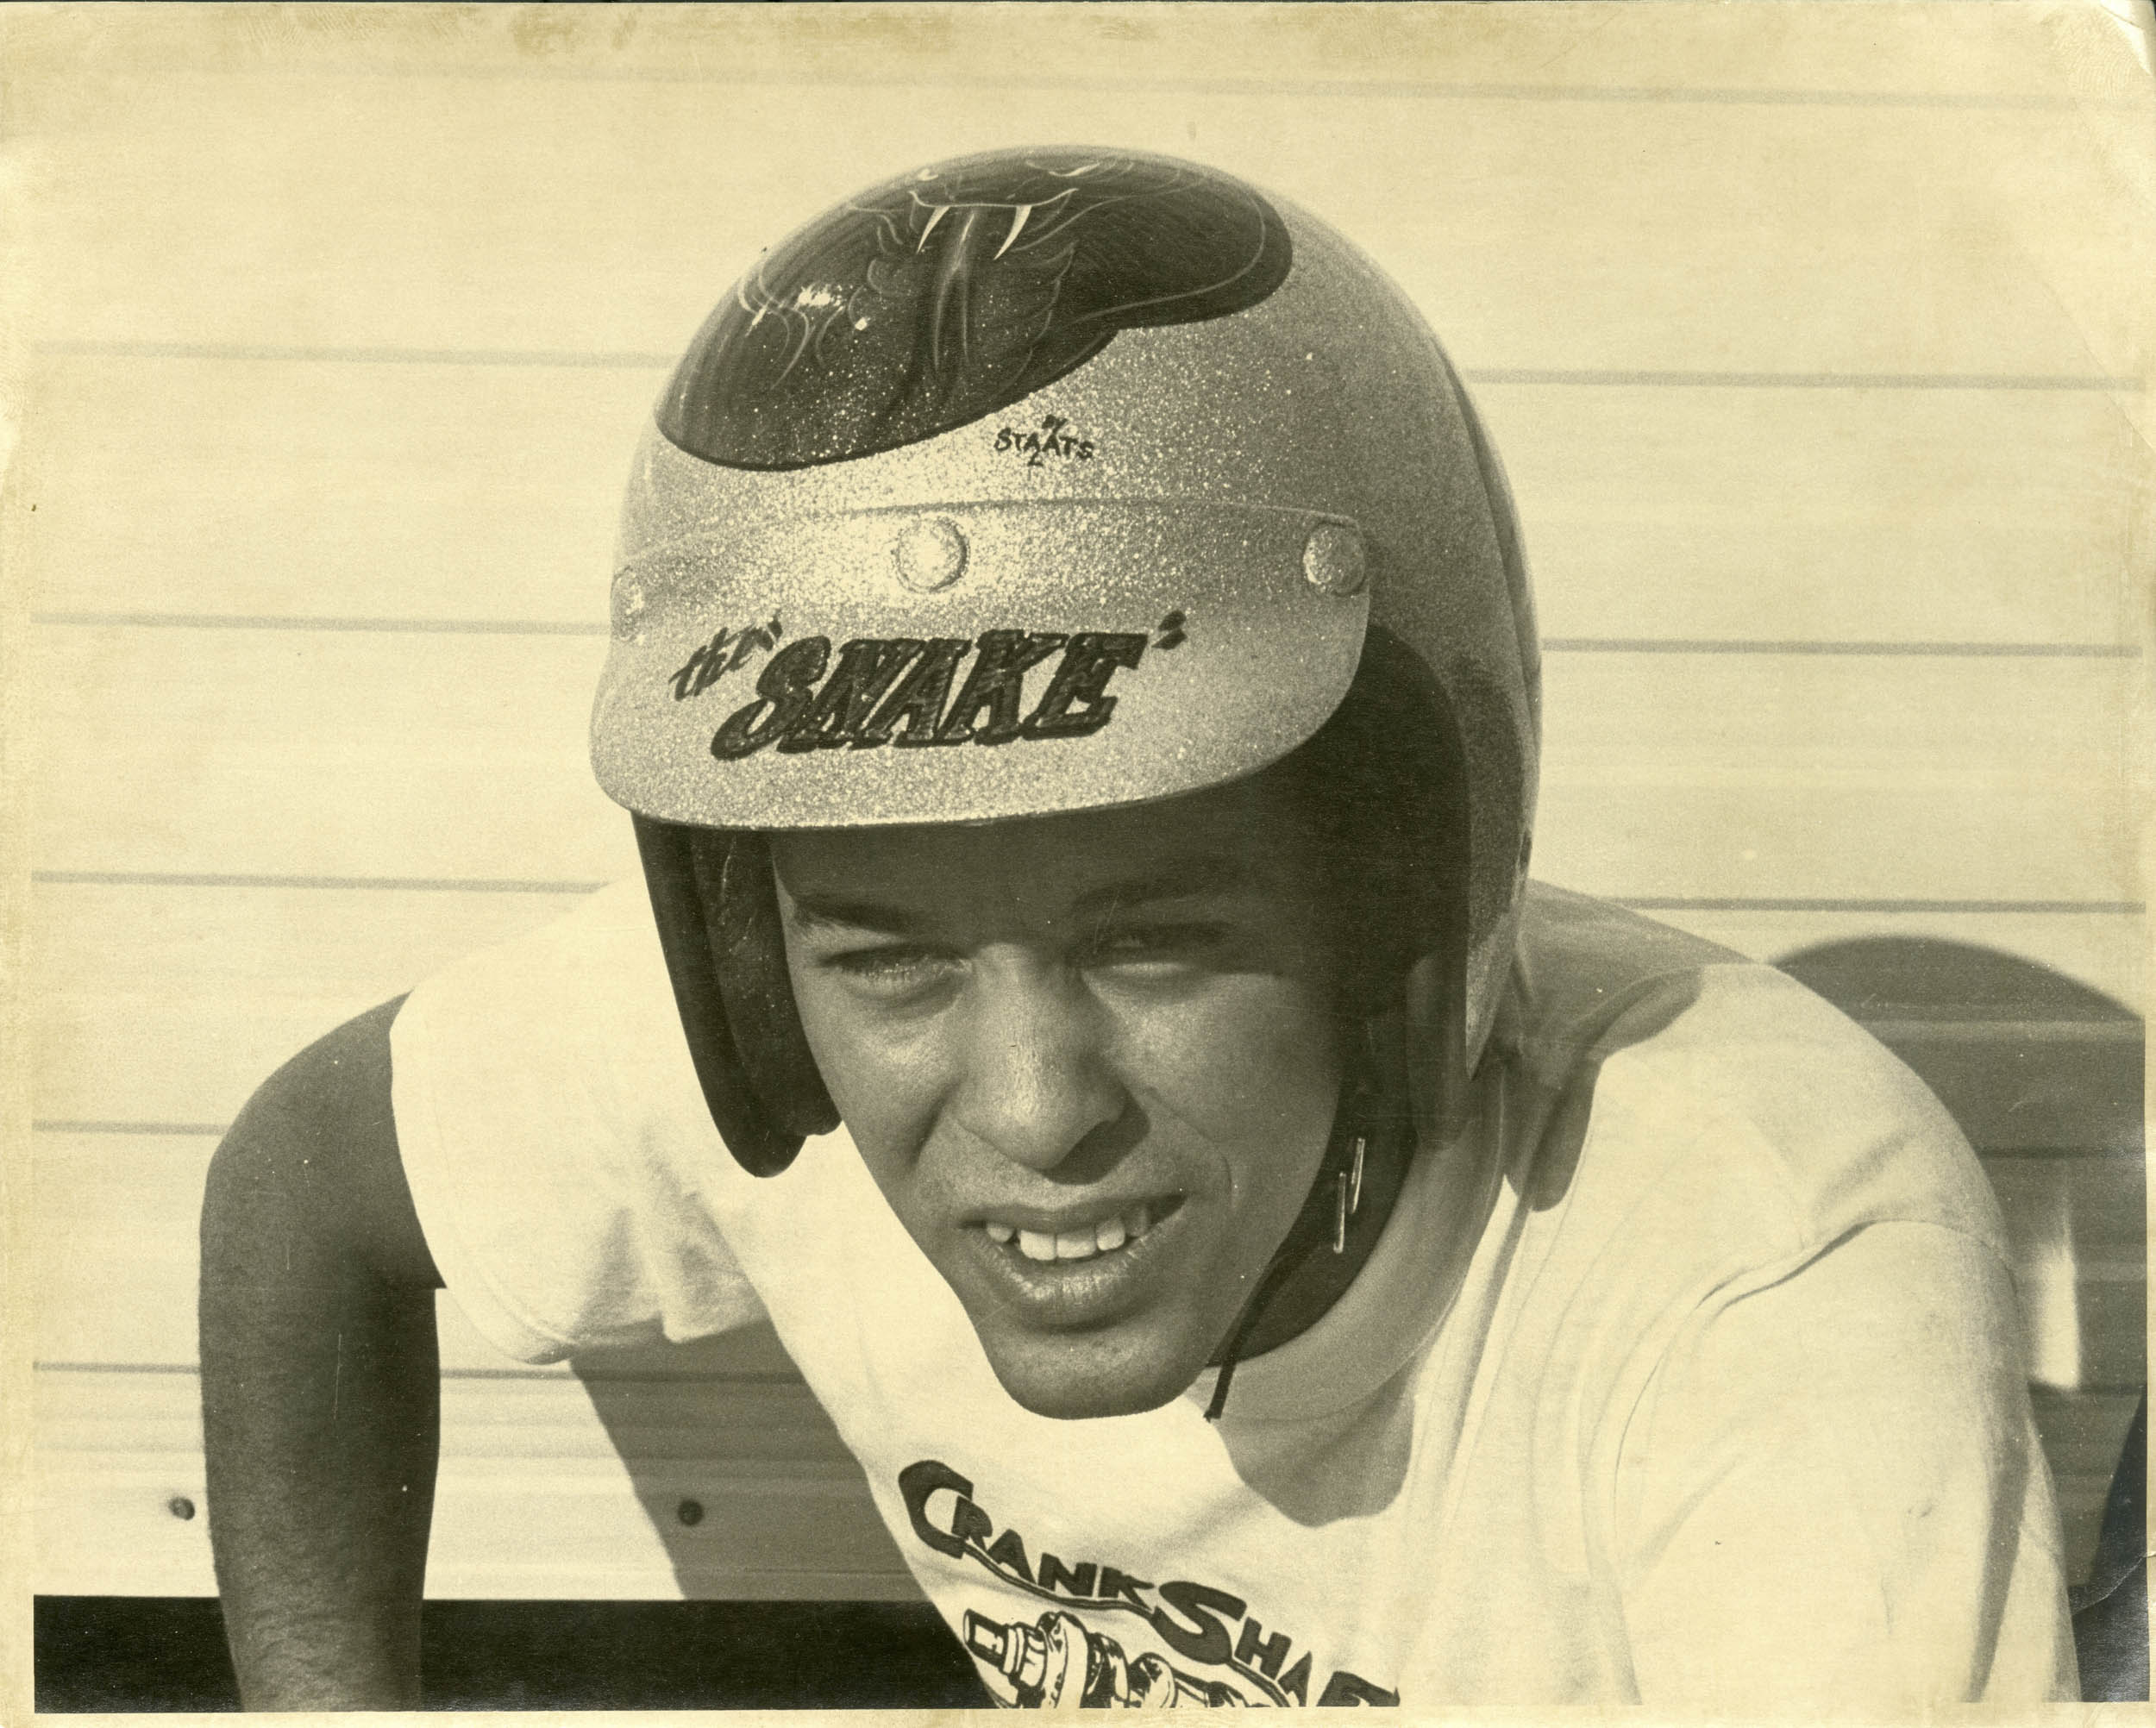 """""""Oh, man, look at my missing tooth. When I finally made money, I got my teeth fixed,"""" says Prudhomme of this shot. """"This is probably 1962, right after I got the Snake nickname. Before that my helmet just said 'Don.' """""""